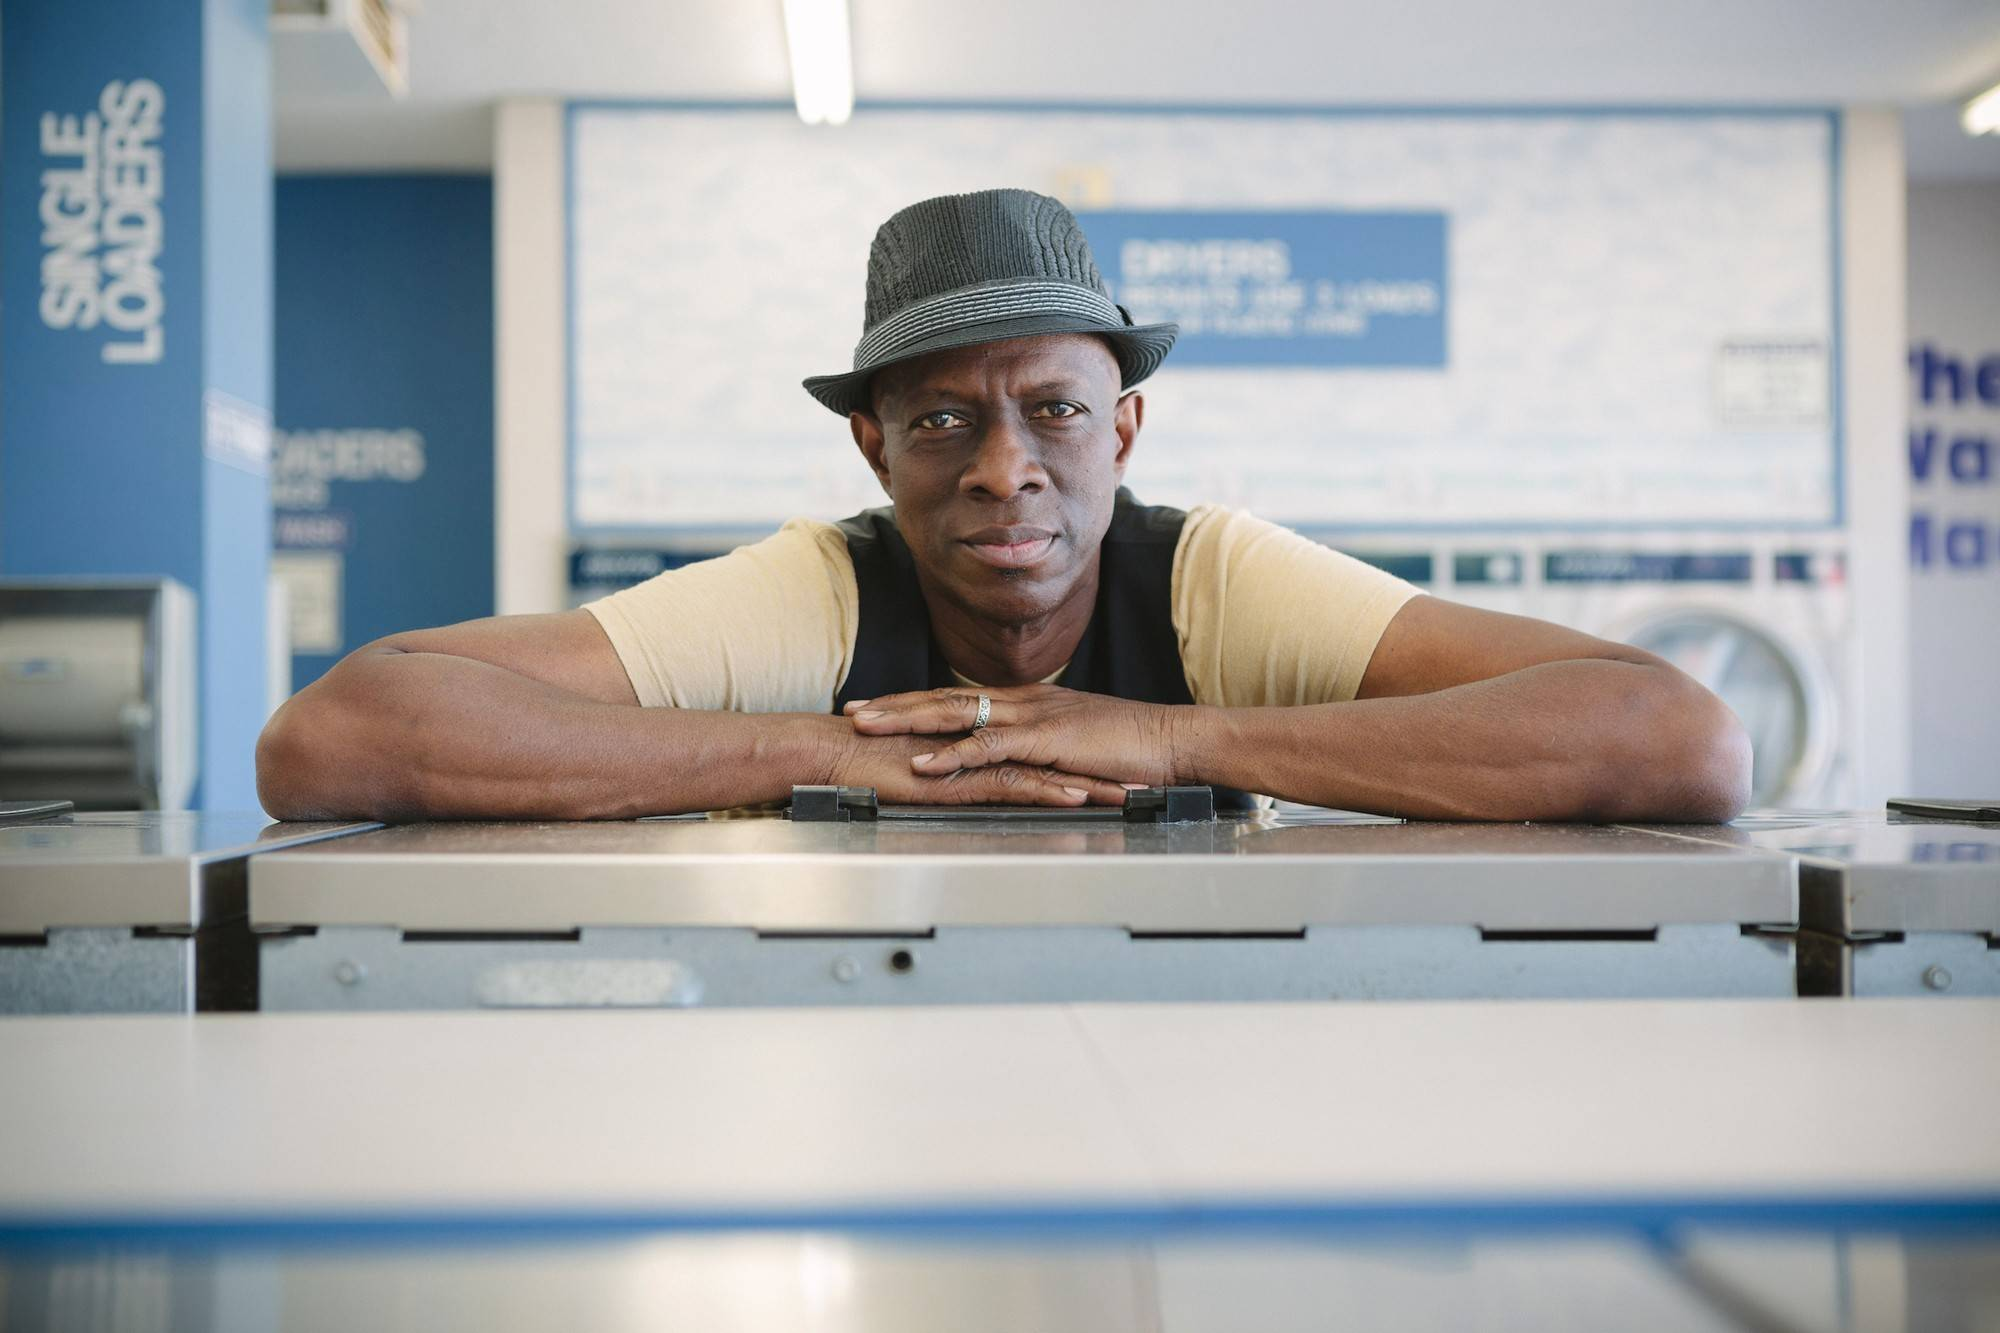 Keb' Mo' performs at the Arcada Theatre in St. Charles on Saturday, Aug. 23.